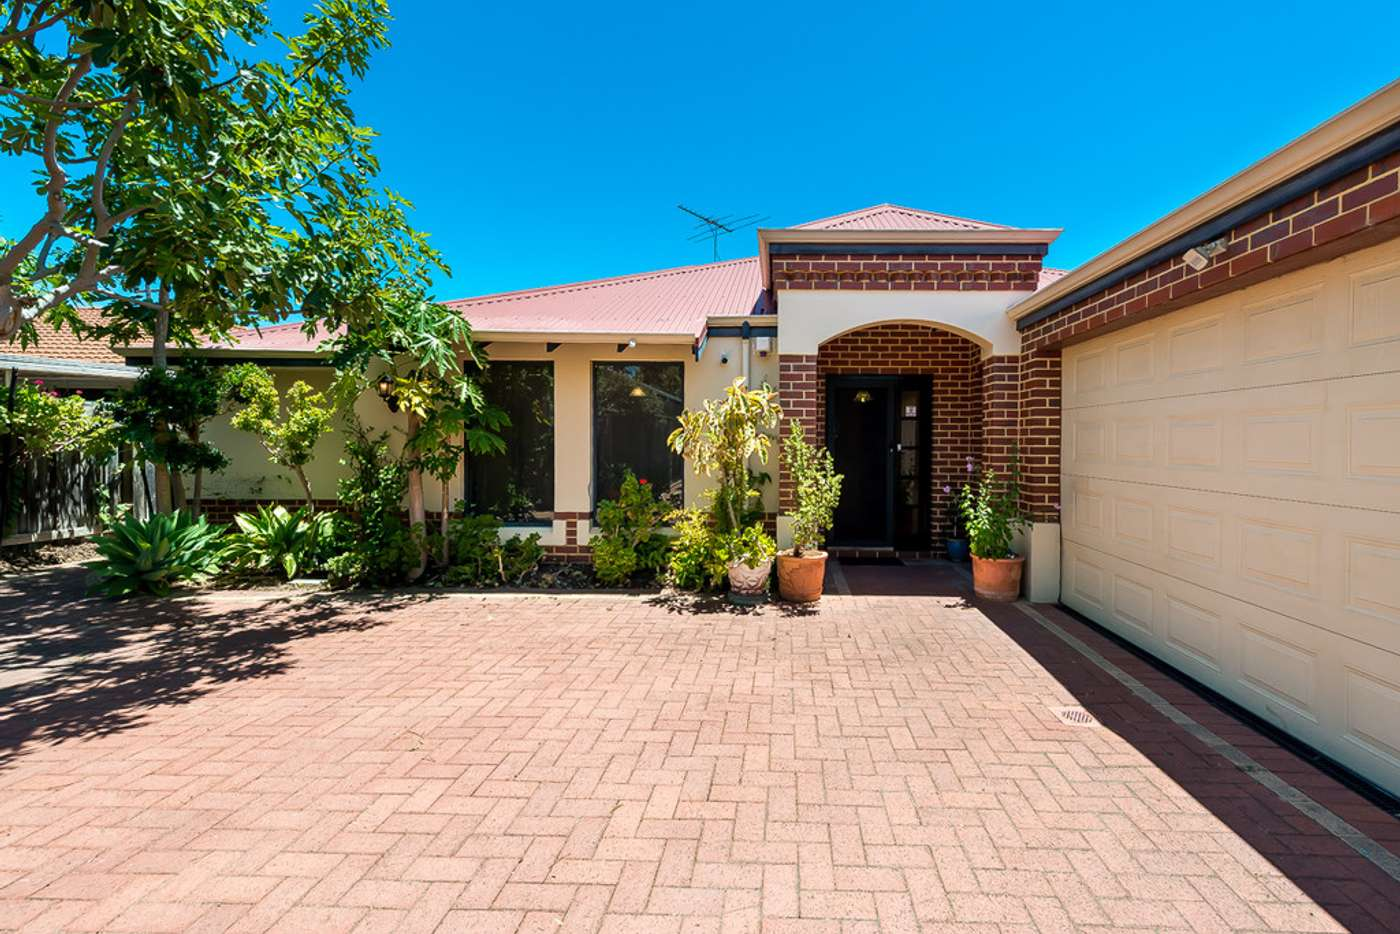 Main view of Homely house listing, 1 Chobham Way, Morley WA 6062